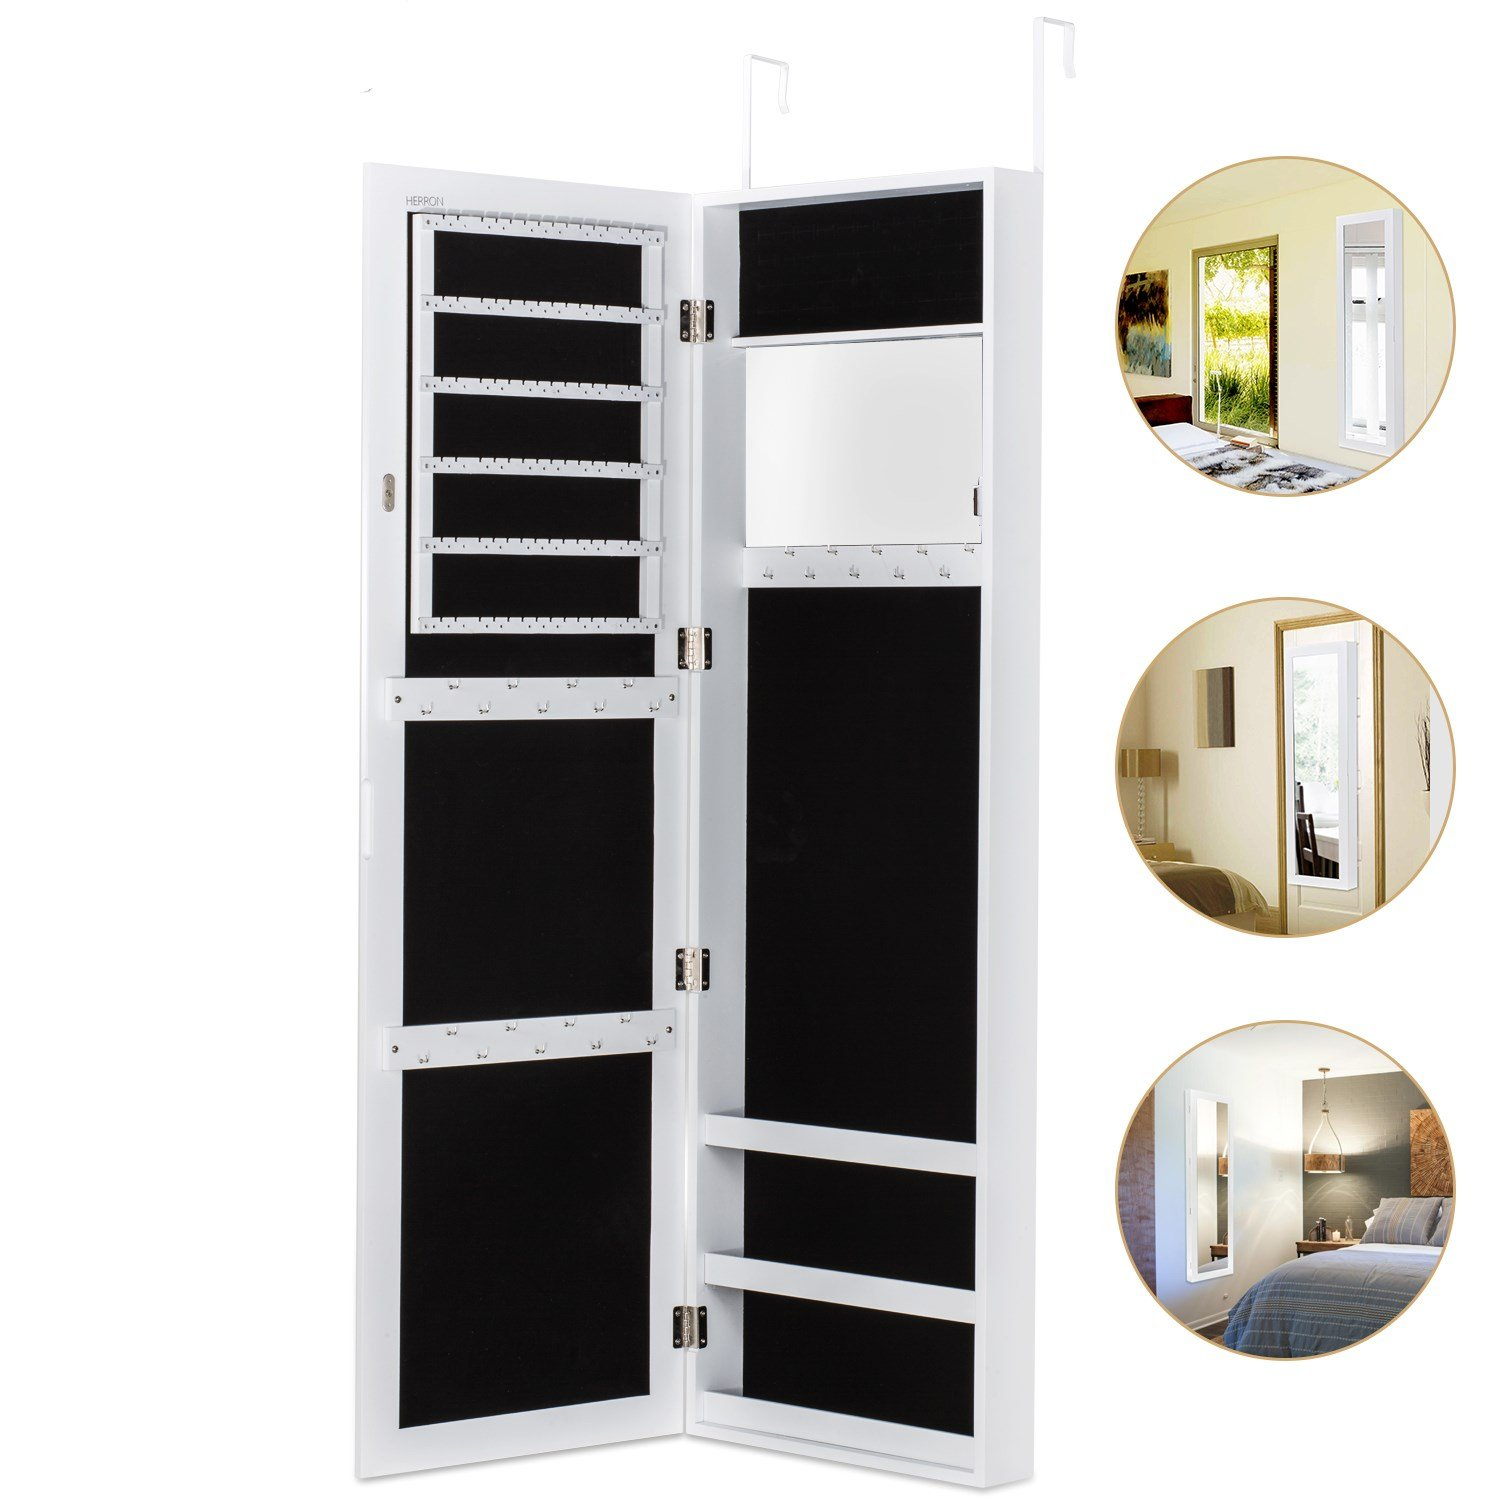 HERRON Wall Jewelry Cabinet Armoire with Mirror, Door or Wall Mounted Jewelry Box to Store Jewelry for Women,White